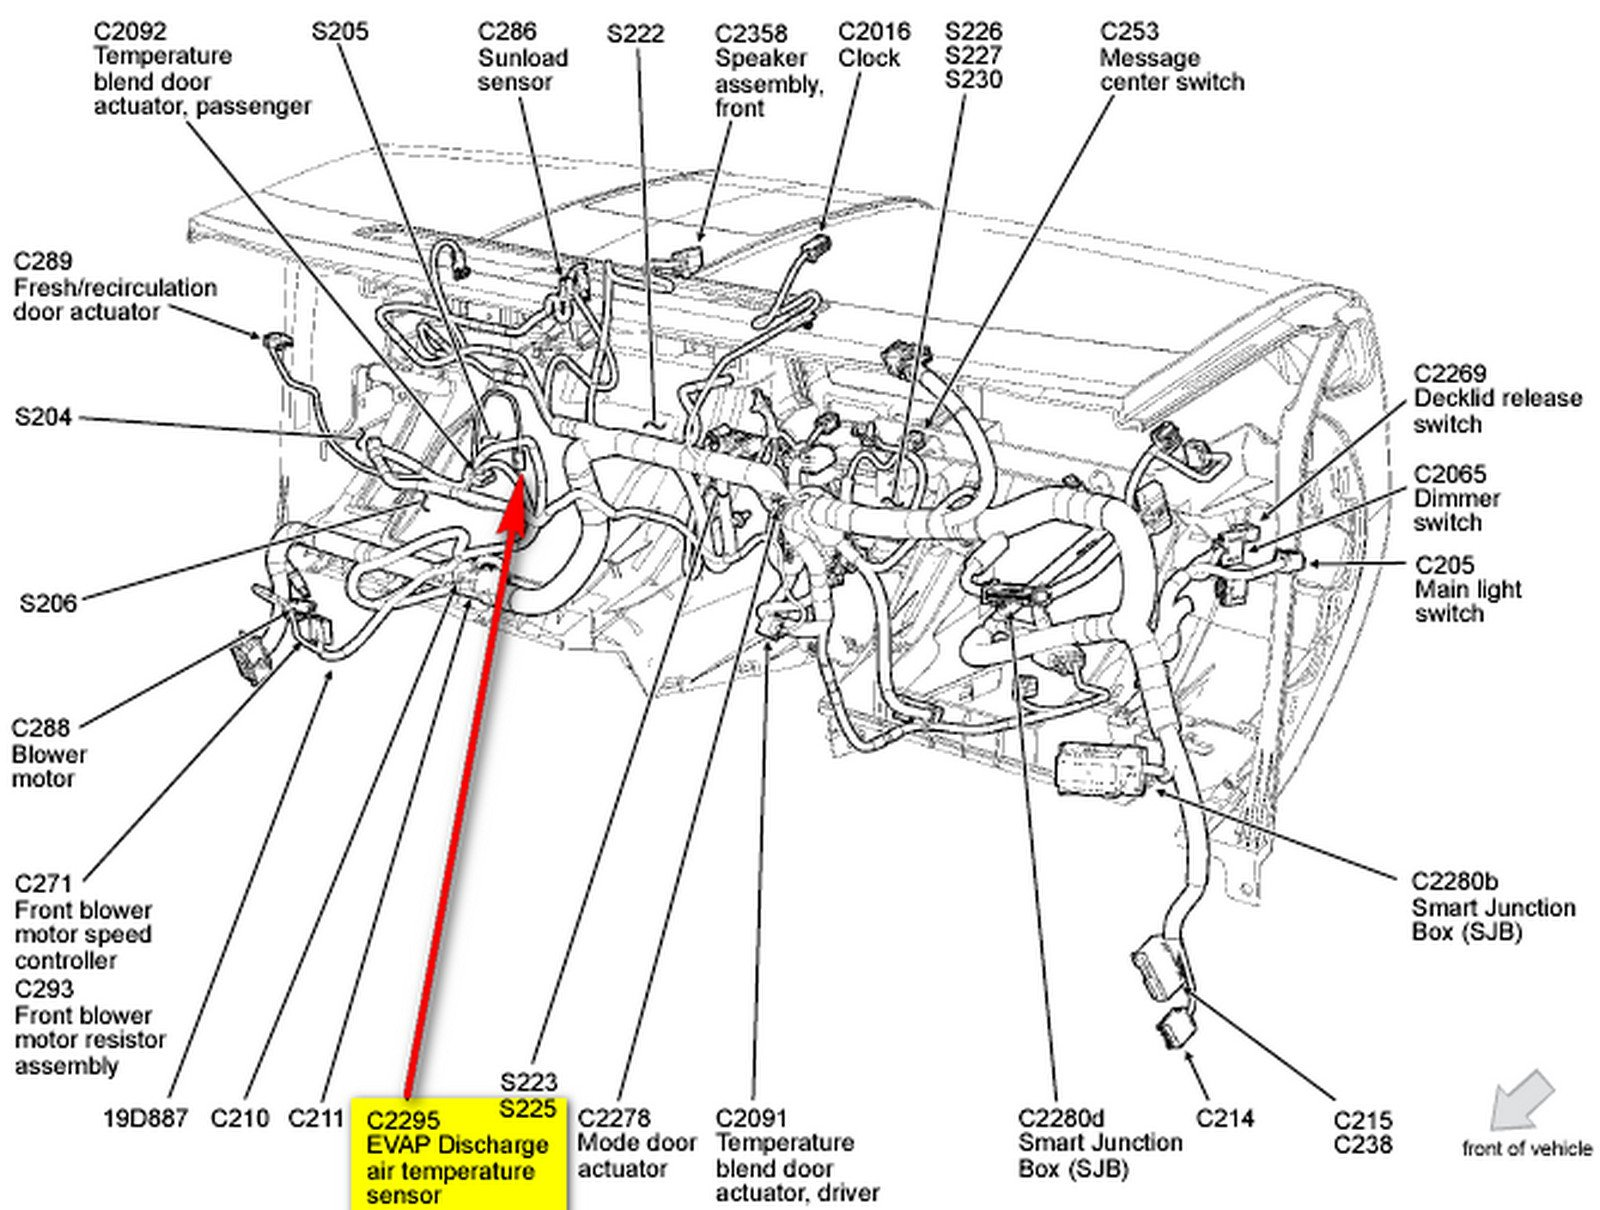 Geo Metro Radiator Fan Wiring Diagram together with Car Engine Coolant Flow likewise Water Pump Location On 2010 Ford Fusion together with Chevy 3800 Freeze Plug Location together with 2001 Chevy Impala Ac Fan Diagram. on 2002 chevy impala radiator